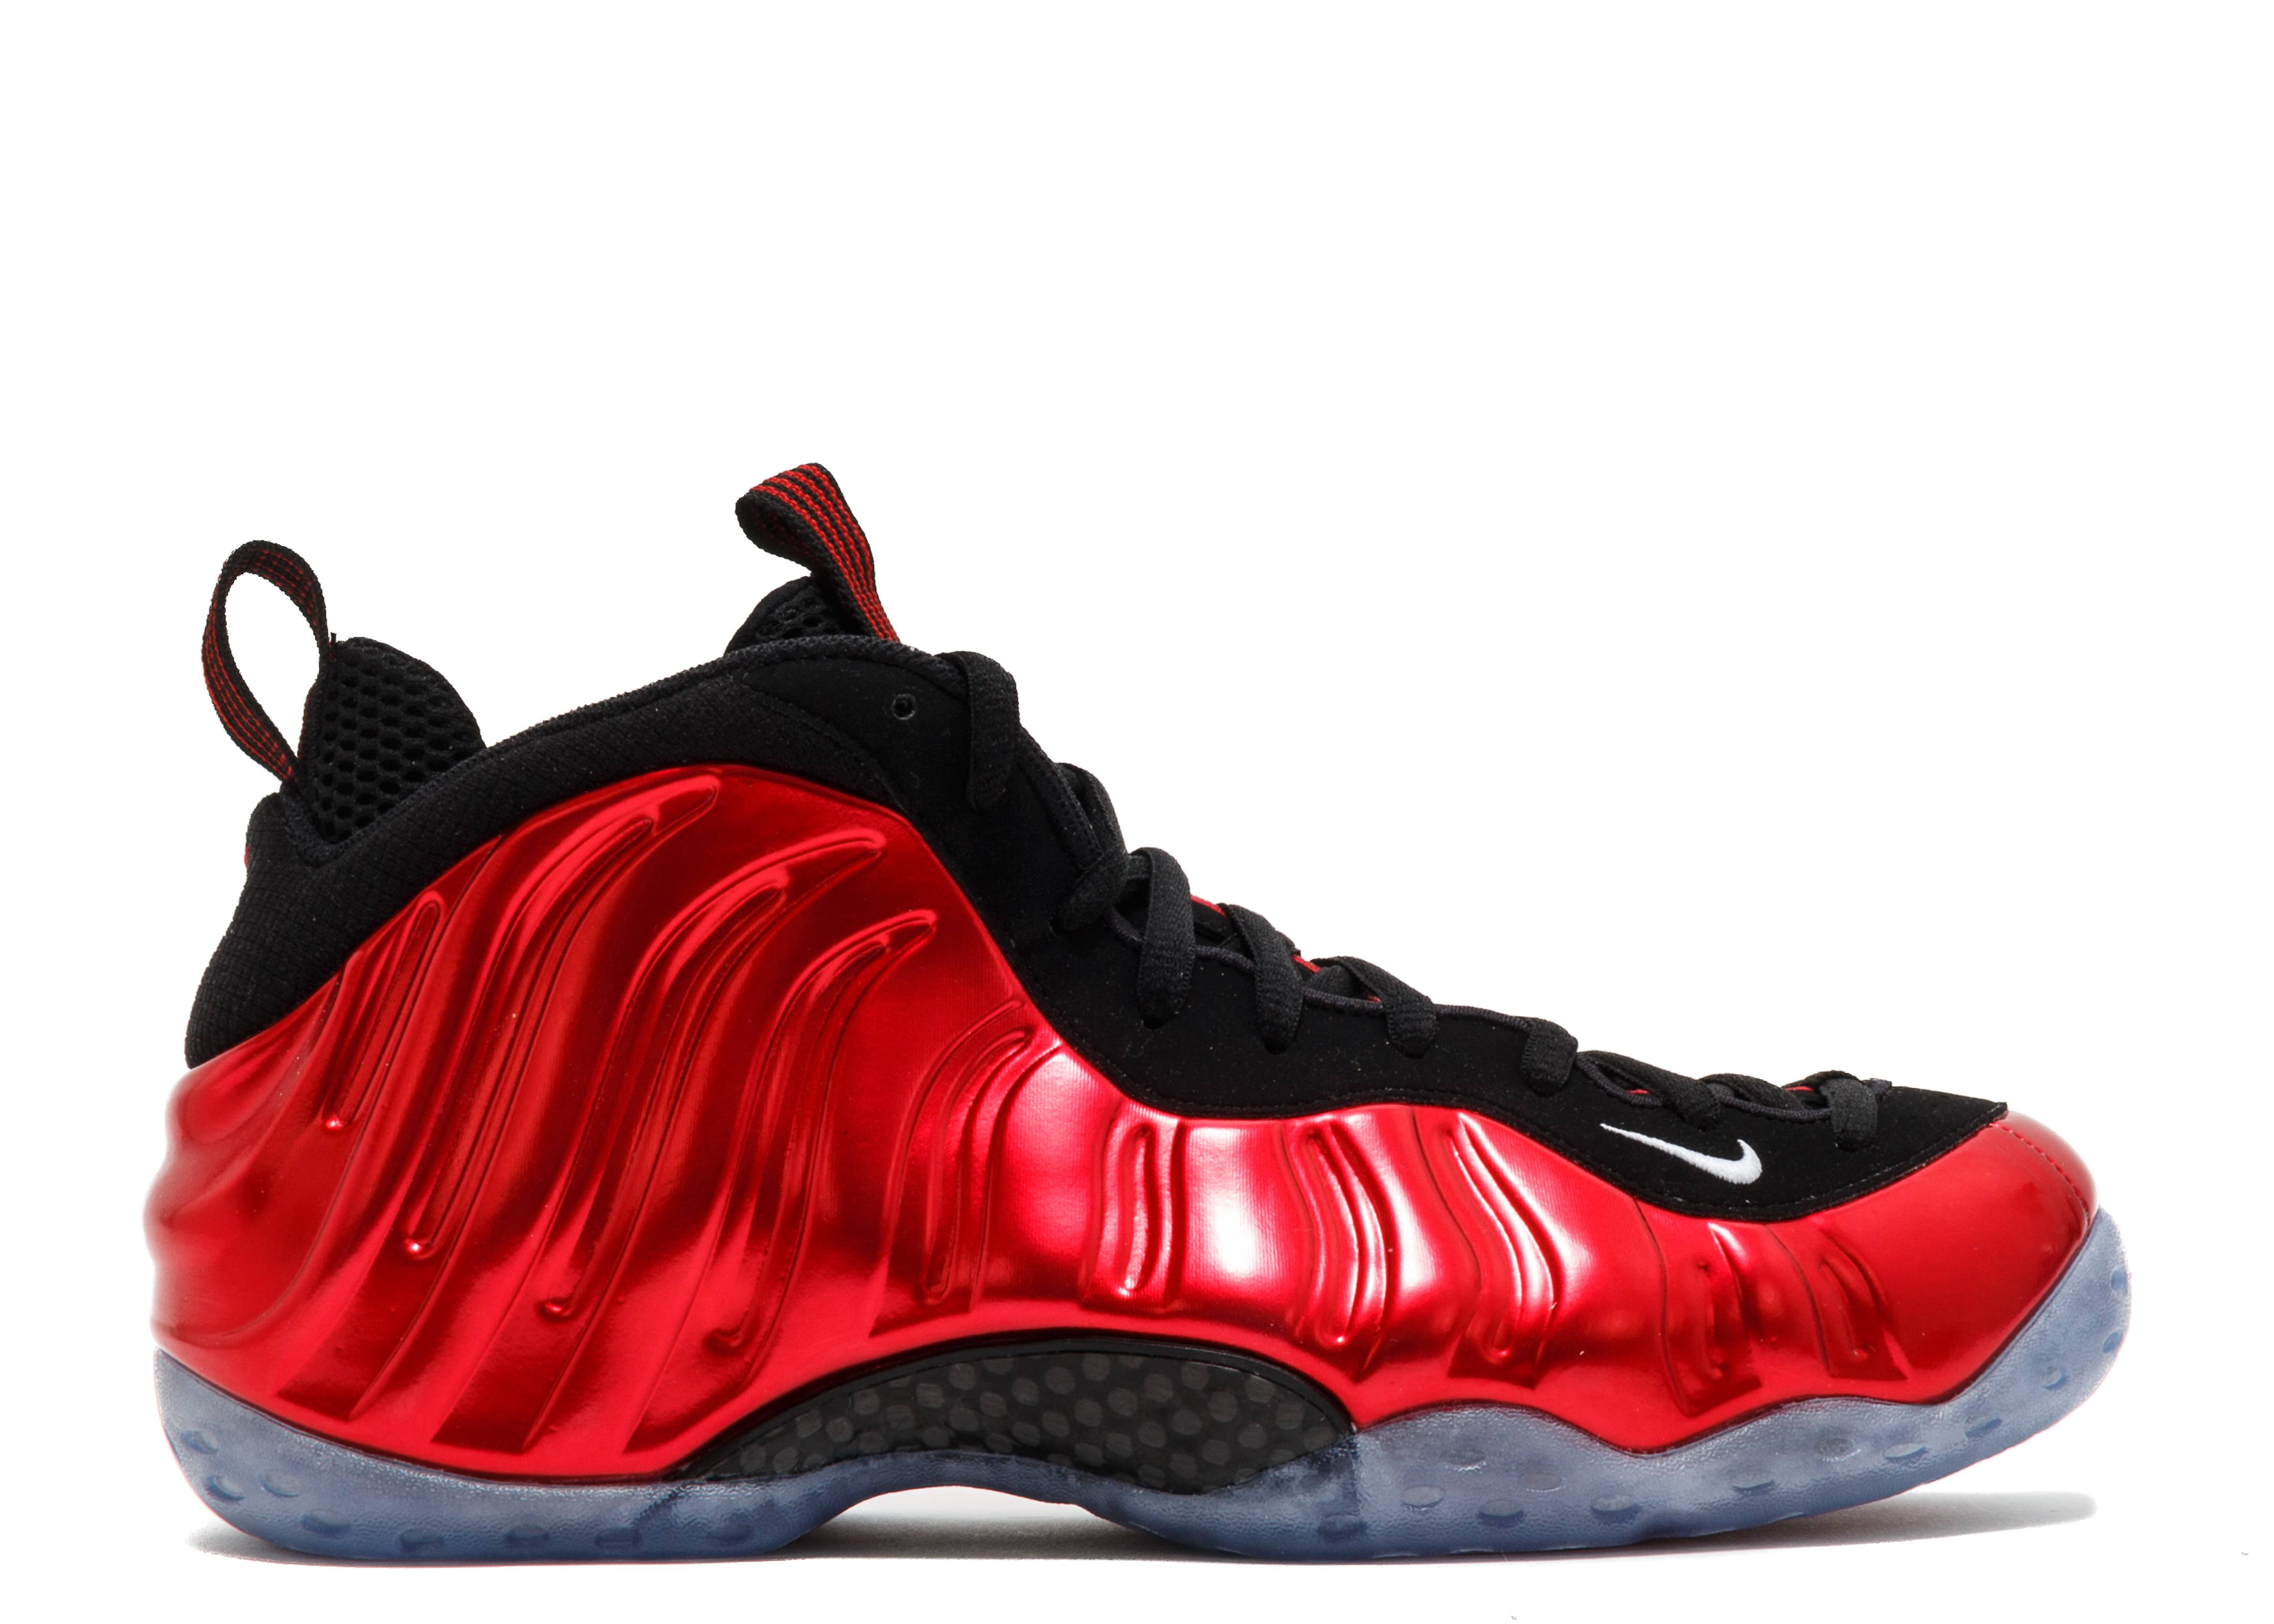 low priced 2f23a d96e0 Air Foamposite One